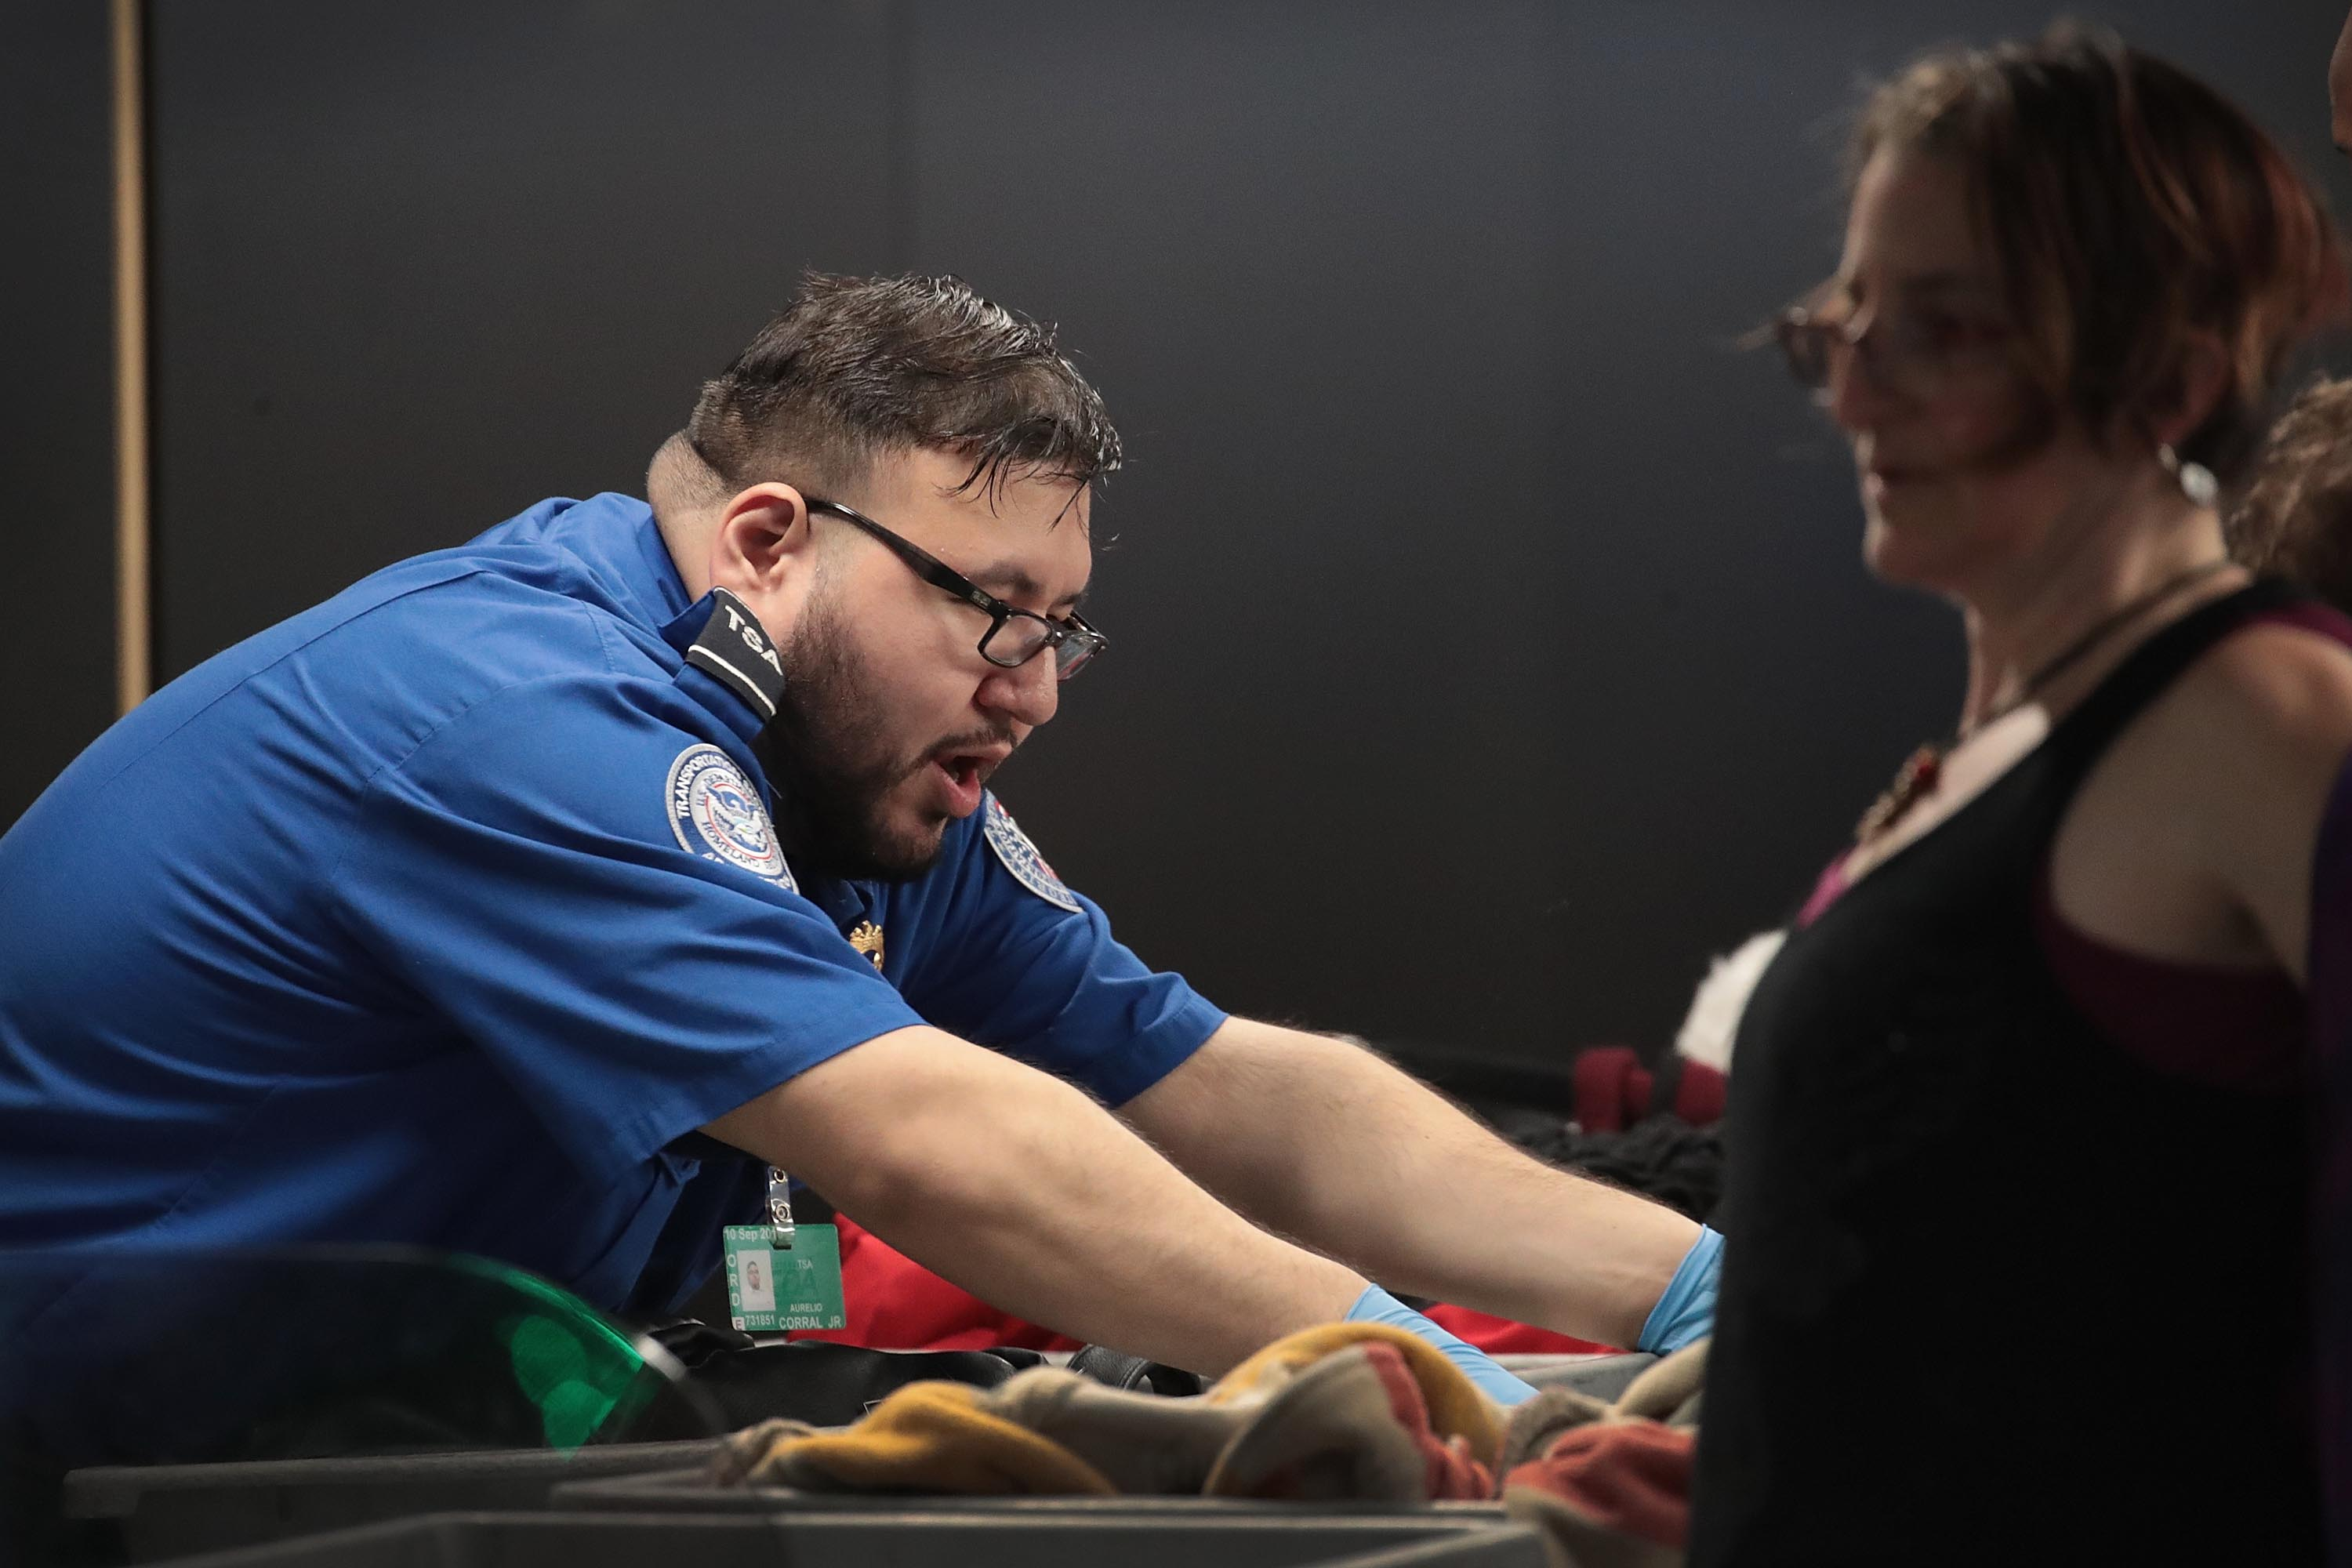 A Transportation Security Administration (TSA) worker screens passengers and airport employees at O'Hare International Airport on January 07, 2019 in Chicago, Illinois. (Photo by Scott Olson/Getty Images)